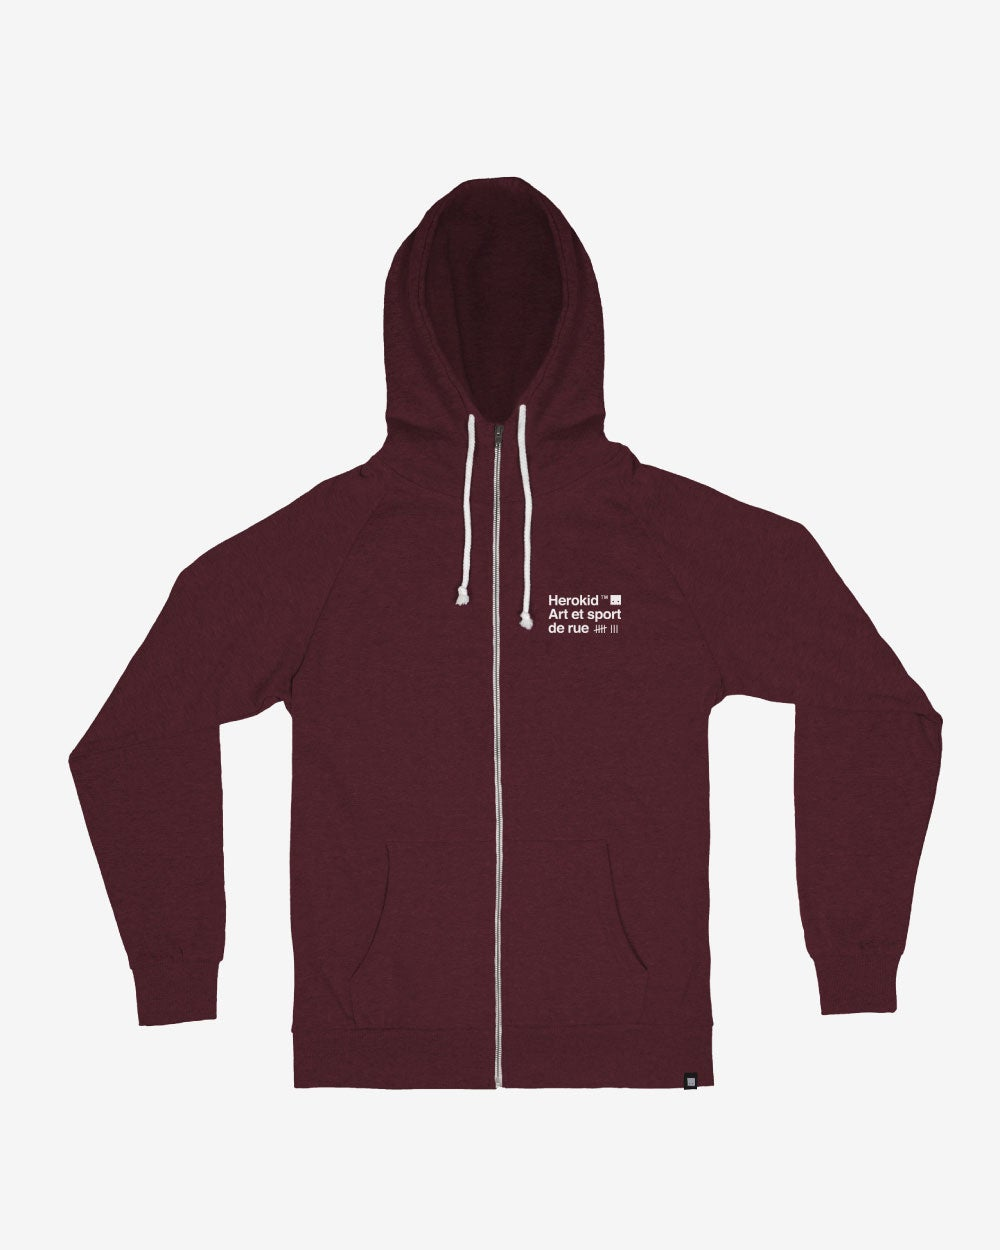 Image of Art et Sport de Rue · Wine Zip Hoodie